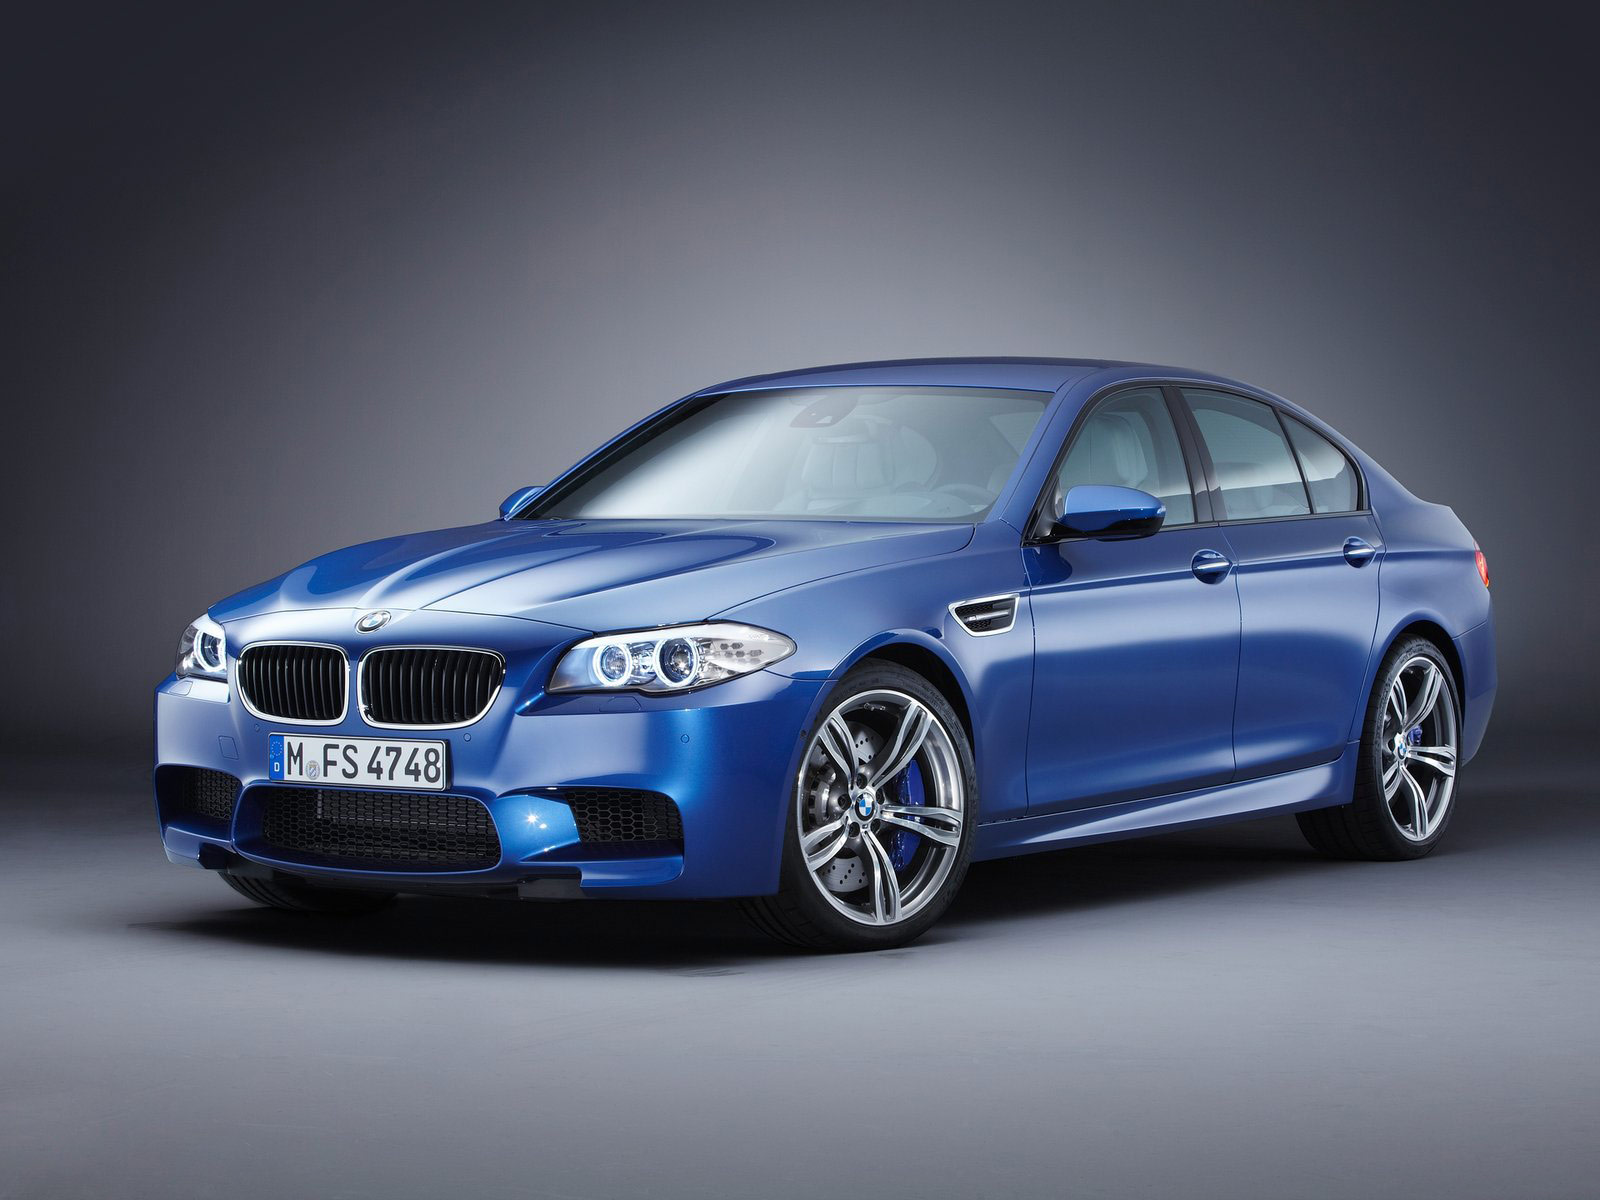 2012 bmw m5 auto insurance information for A m motors